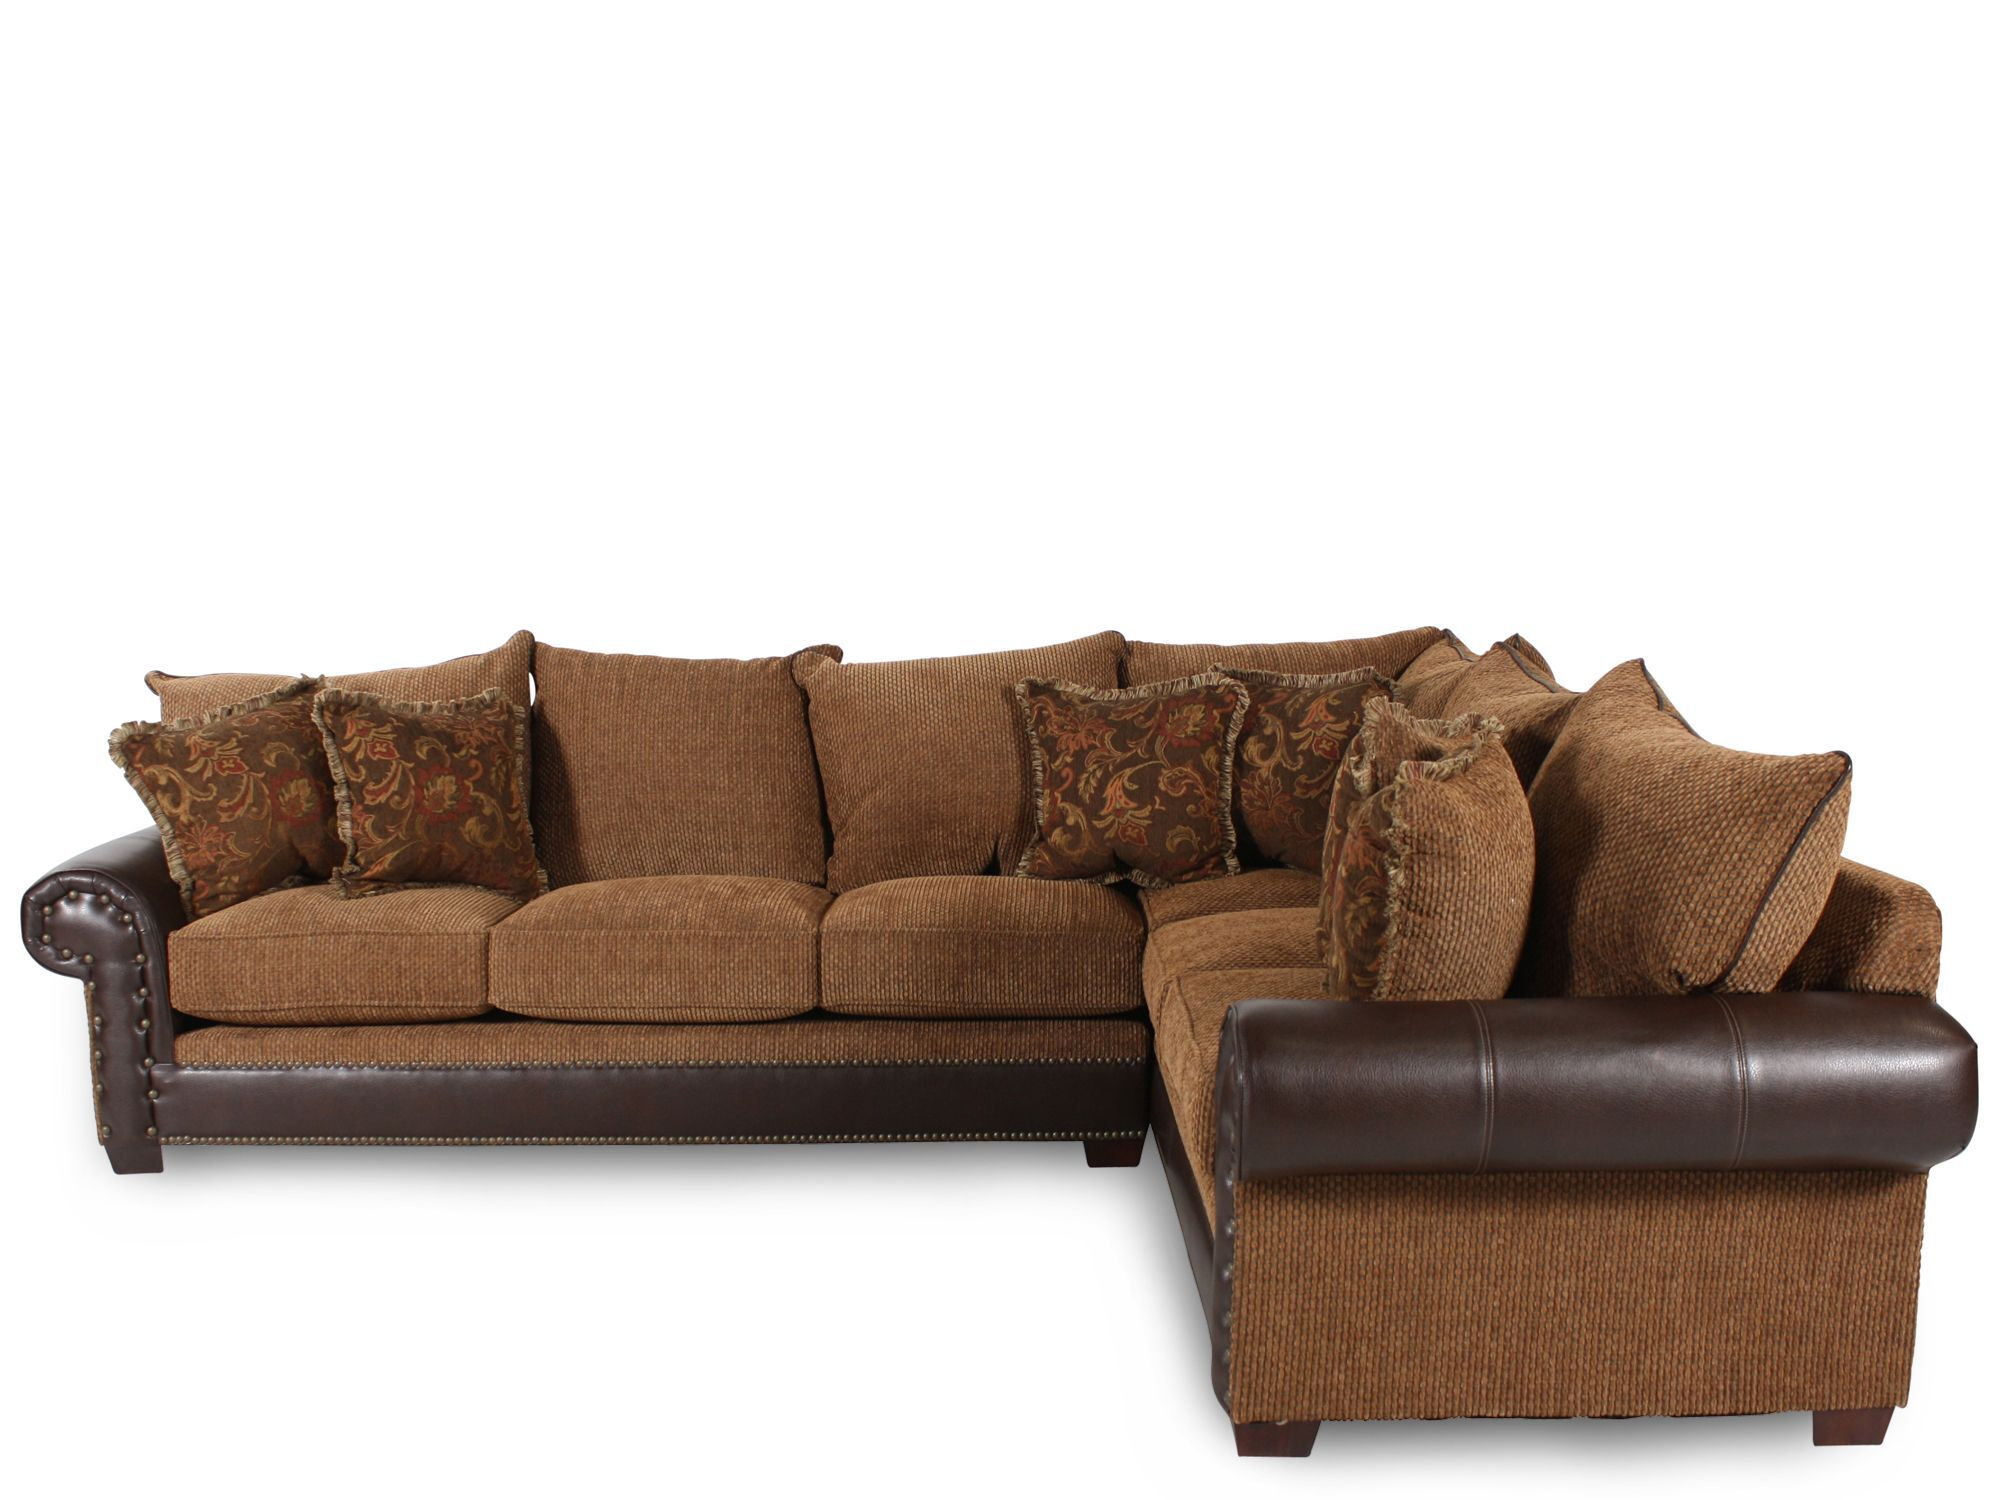 michael nicholas aspen sofa queen beds nz two piece sectional mathis brothers